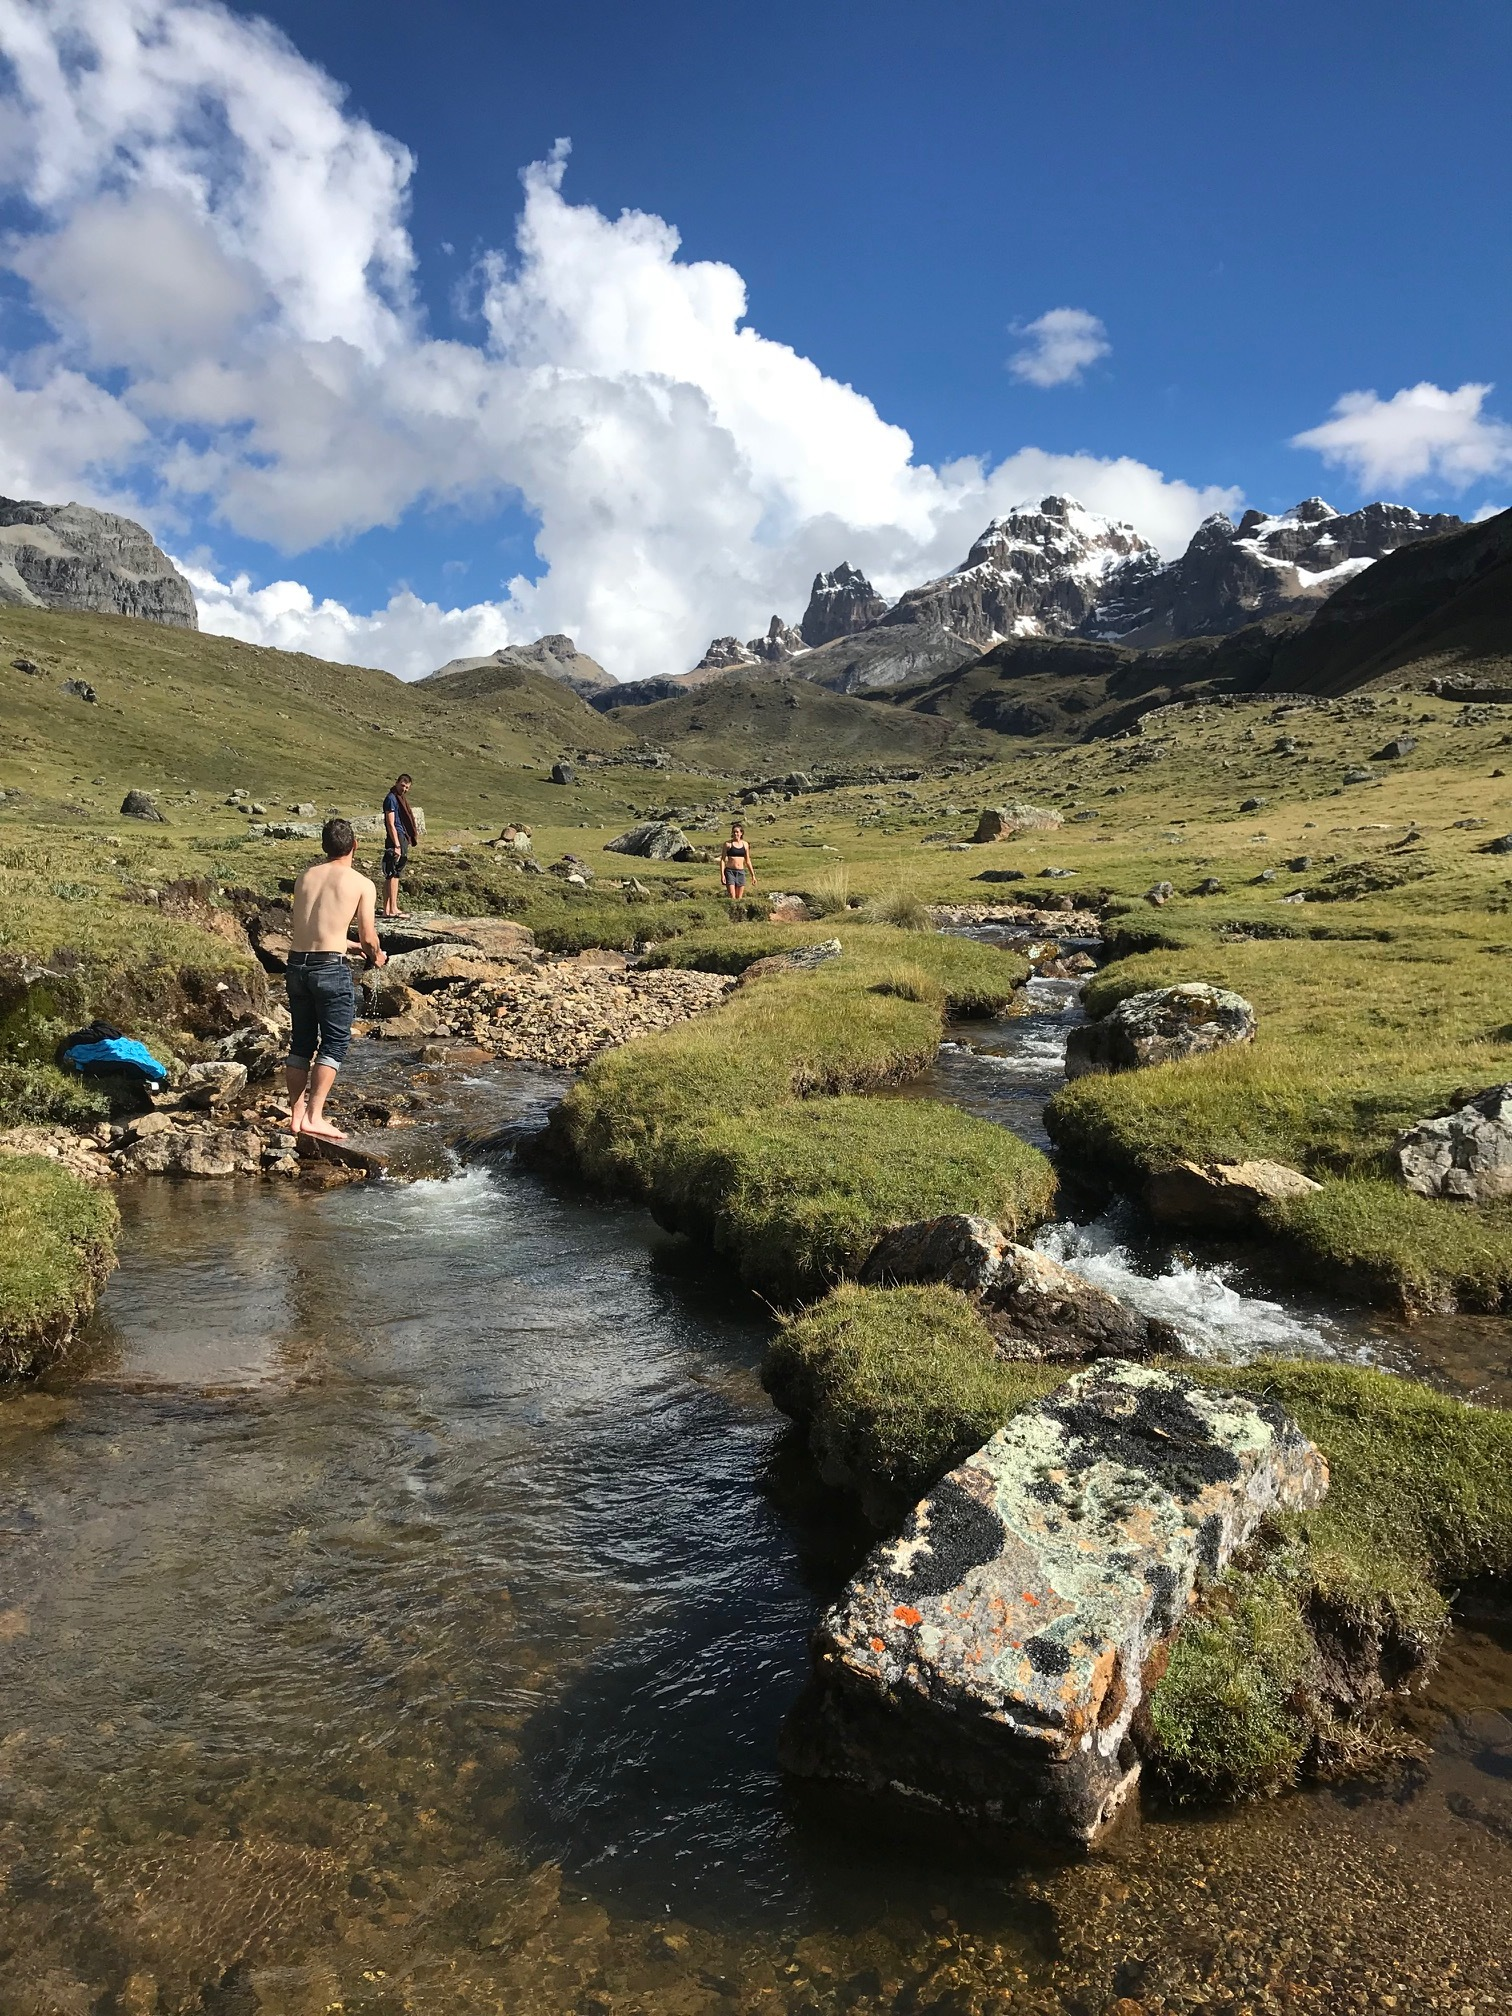 Bathing in the mountains in a grassy valley